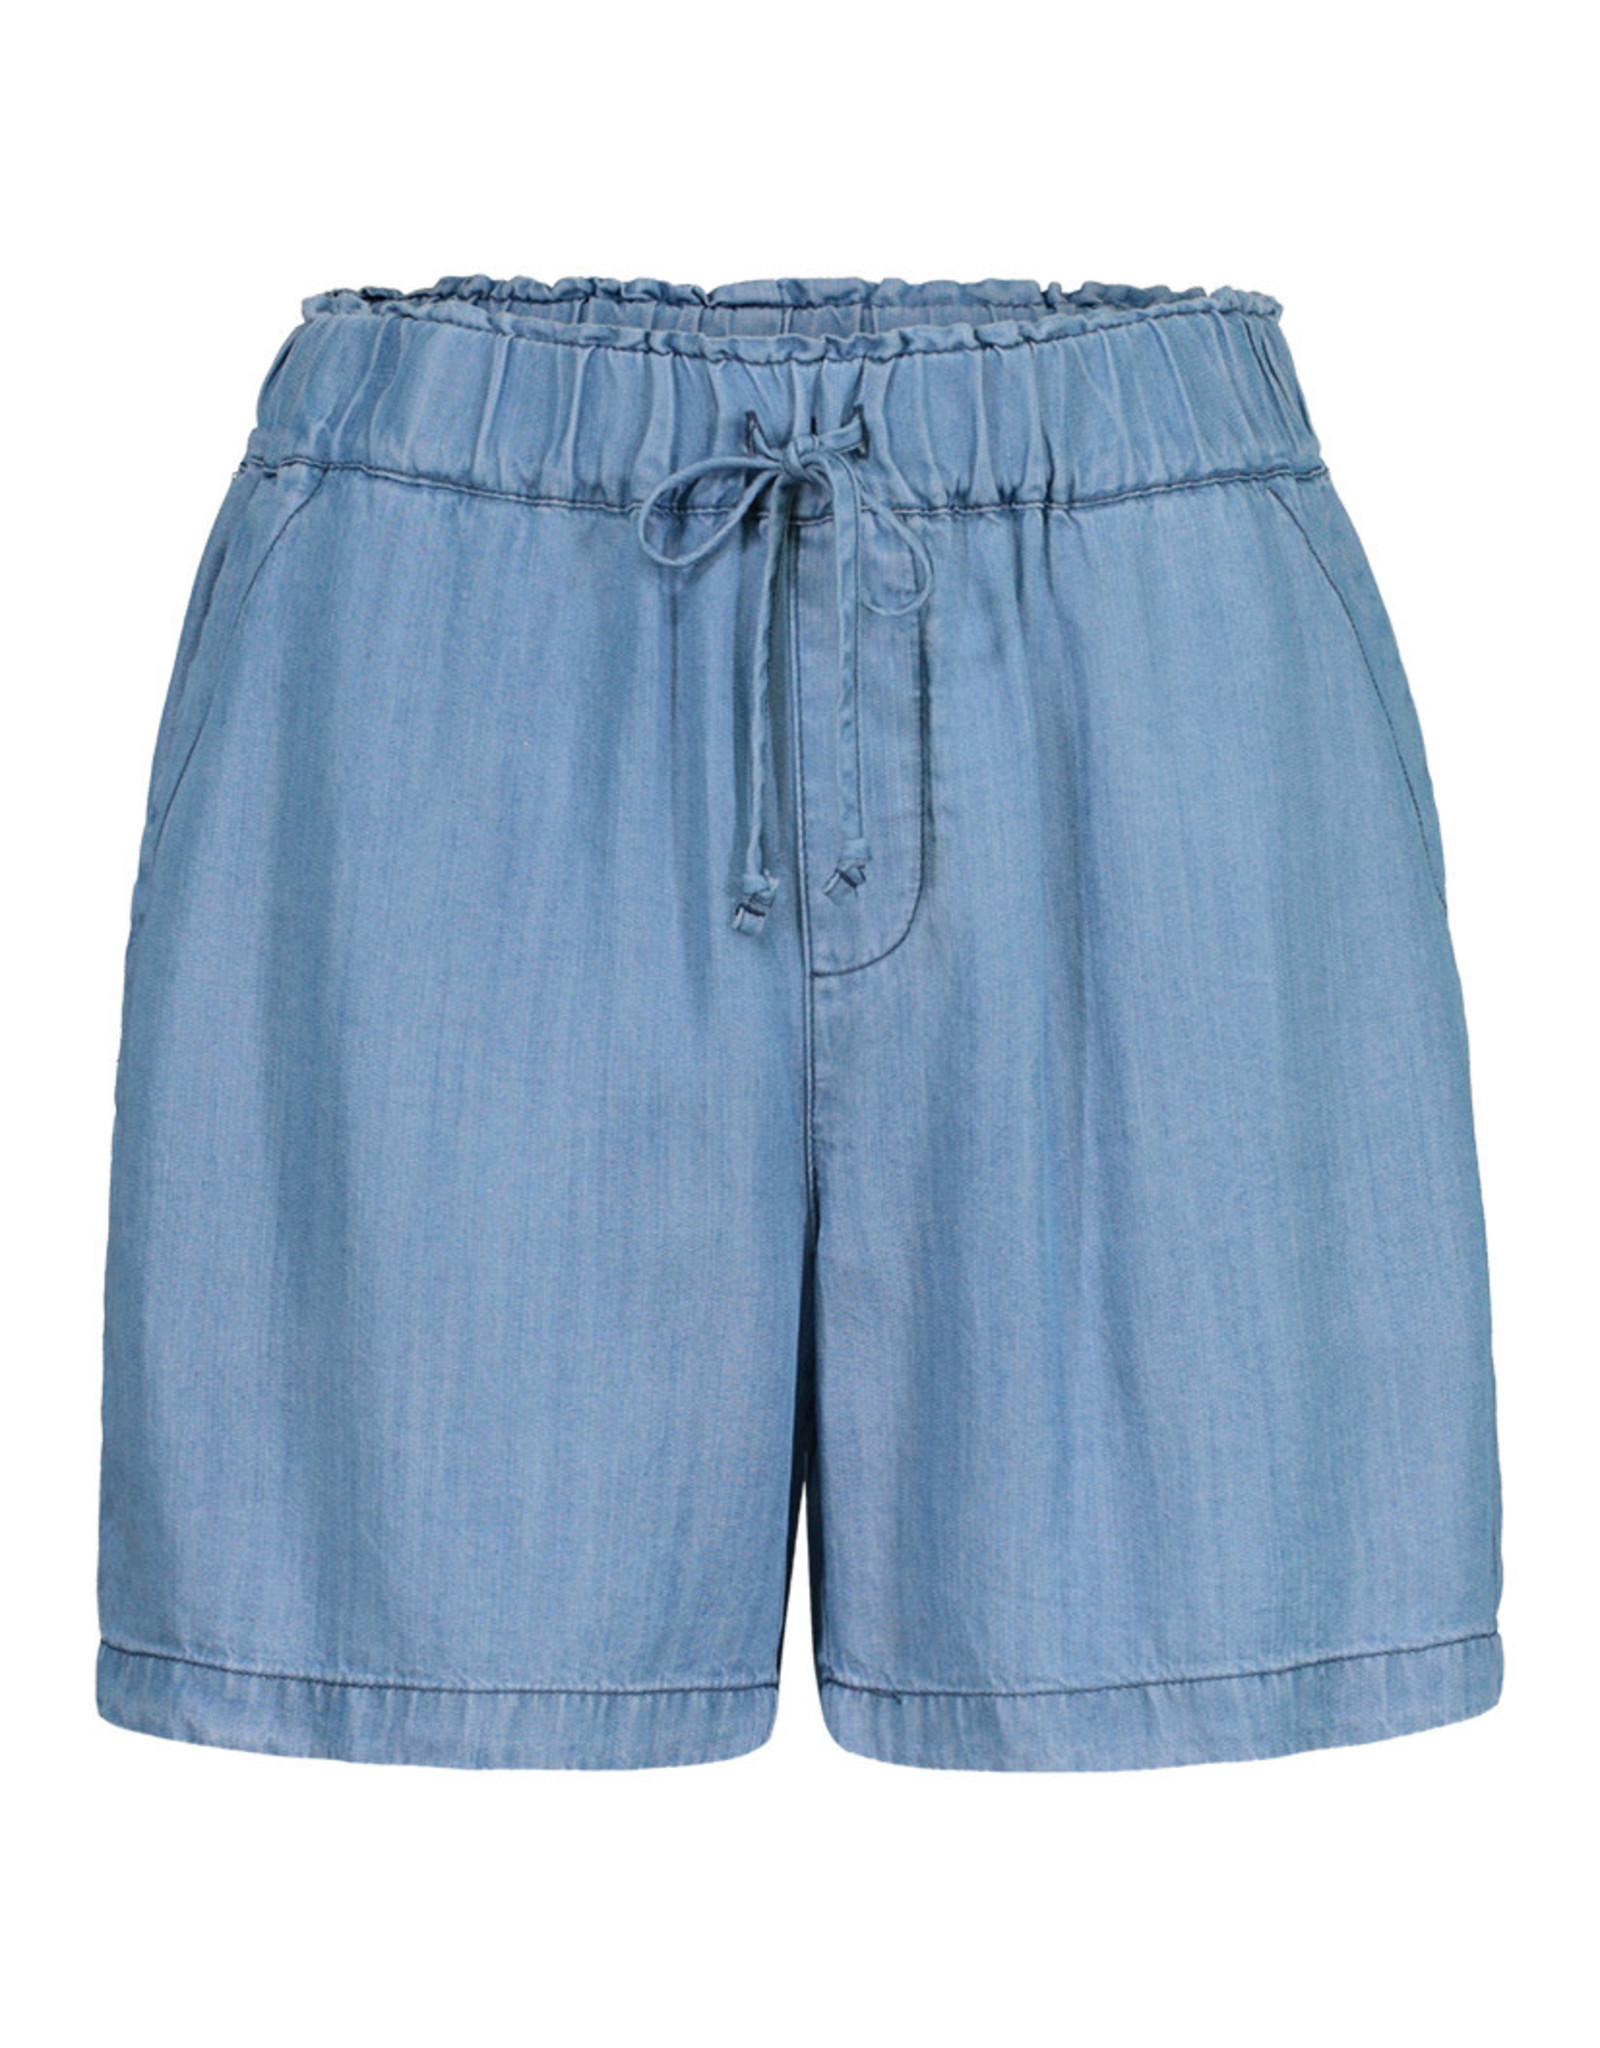 Tribal 66100 Short with Tie